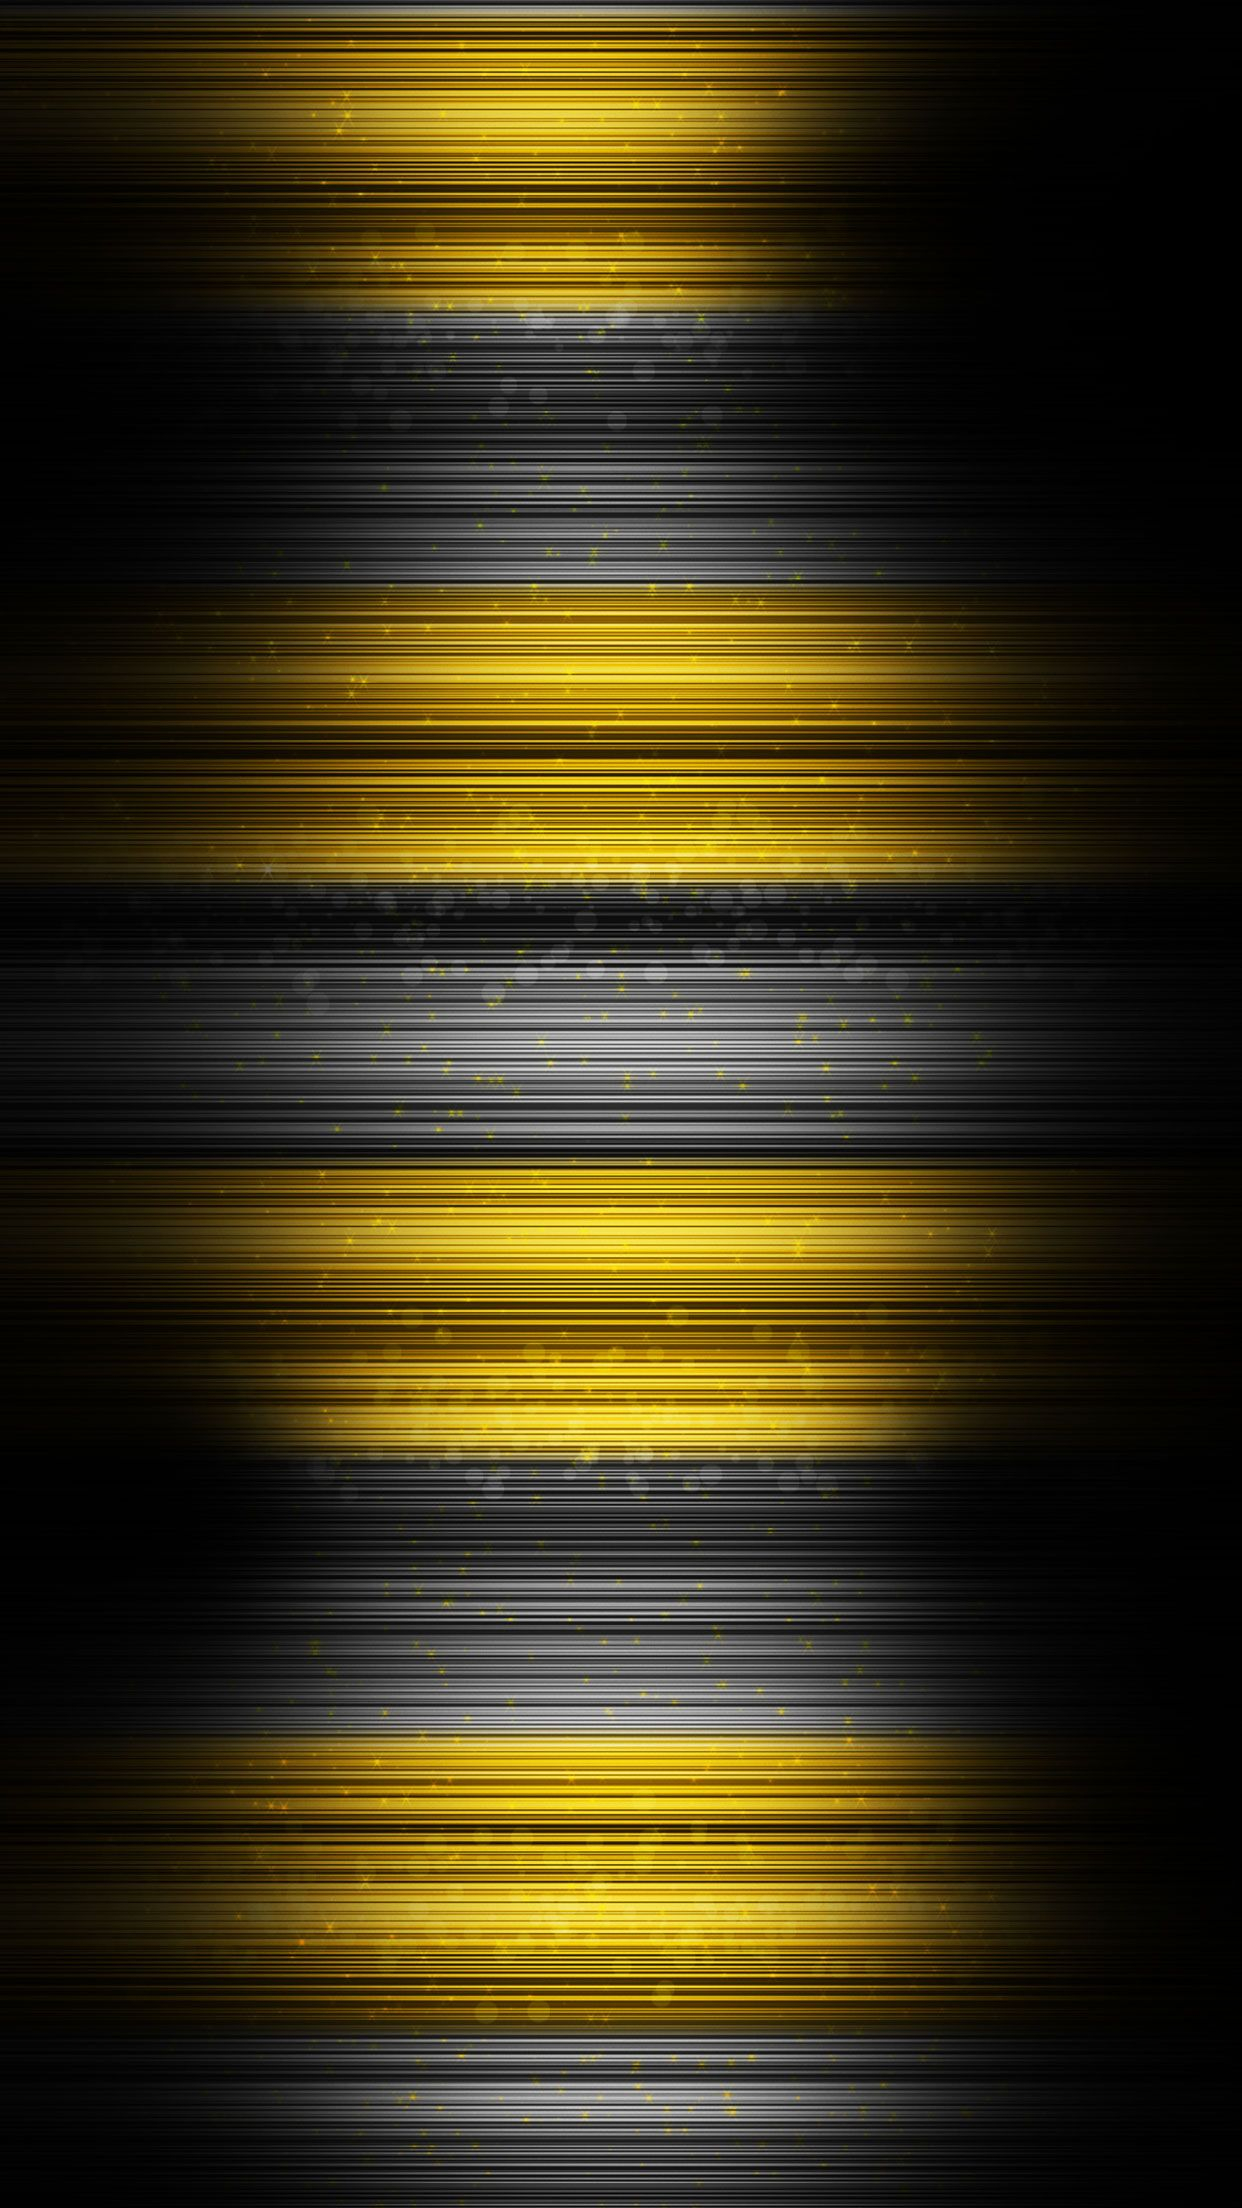 yellow and black abstract wallpaper for #iphone and #android